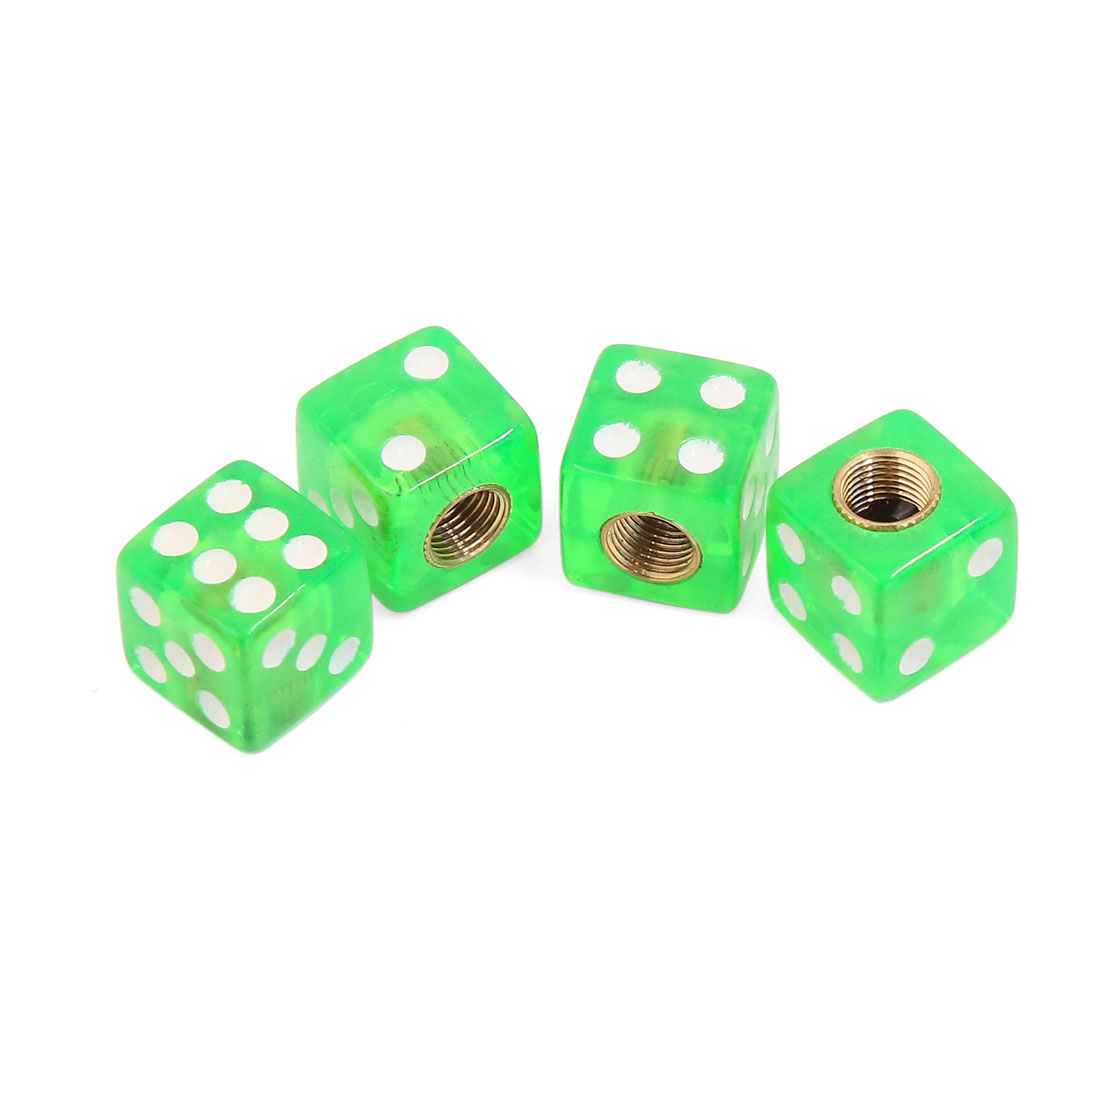 7mm Thread Green Dice Design Car Wheel Tire Tyre Valve Stem Air Dust Caps 4pcs